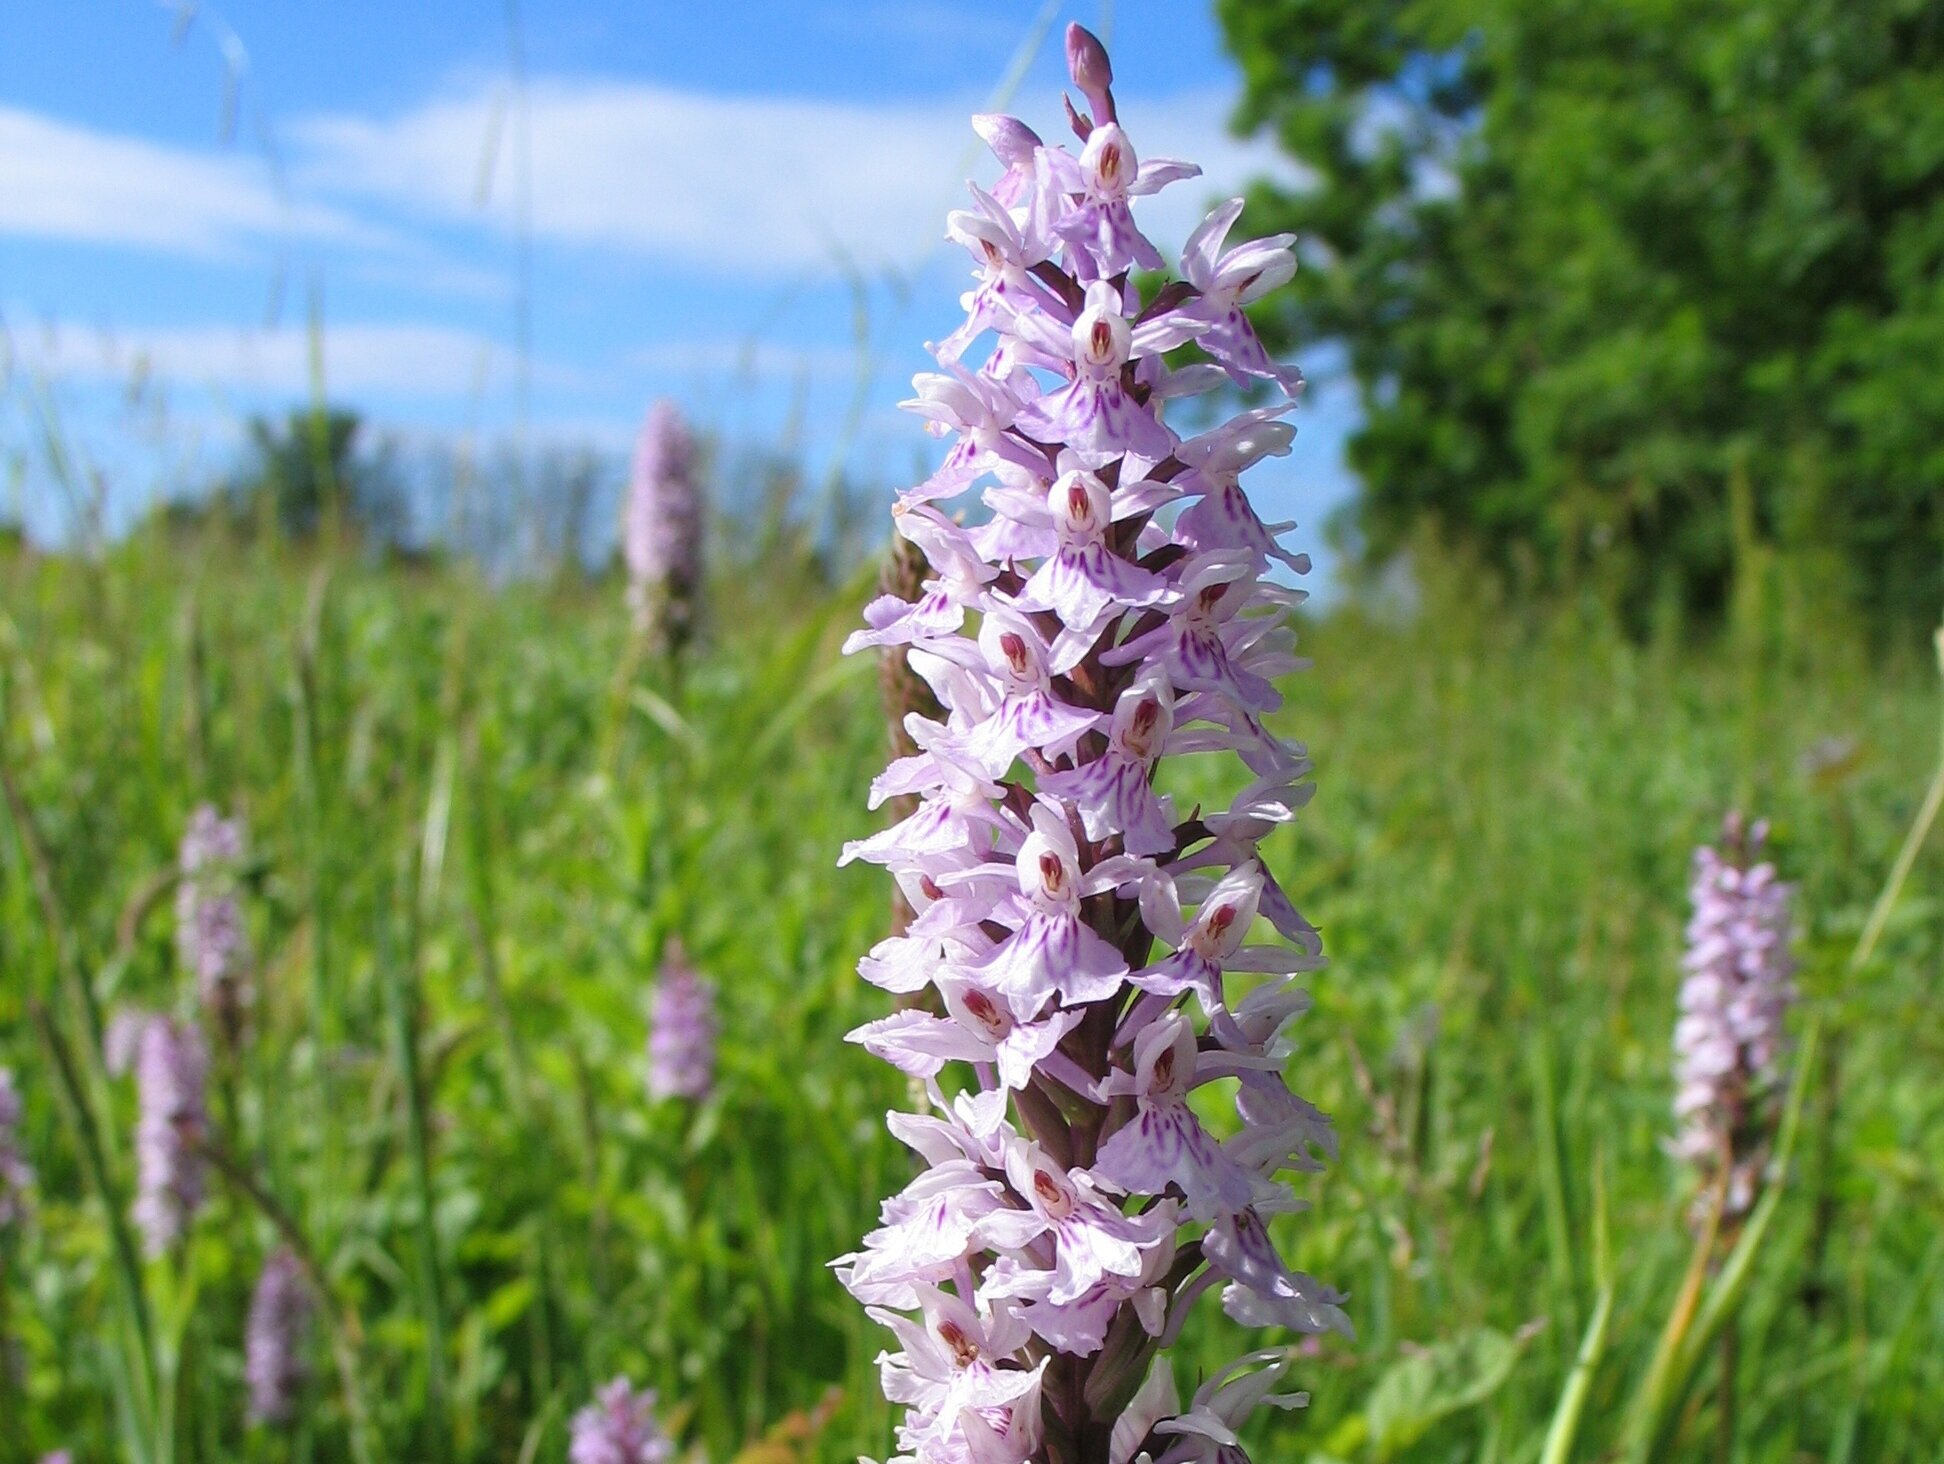 Common spotted orchids, Tortington